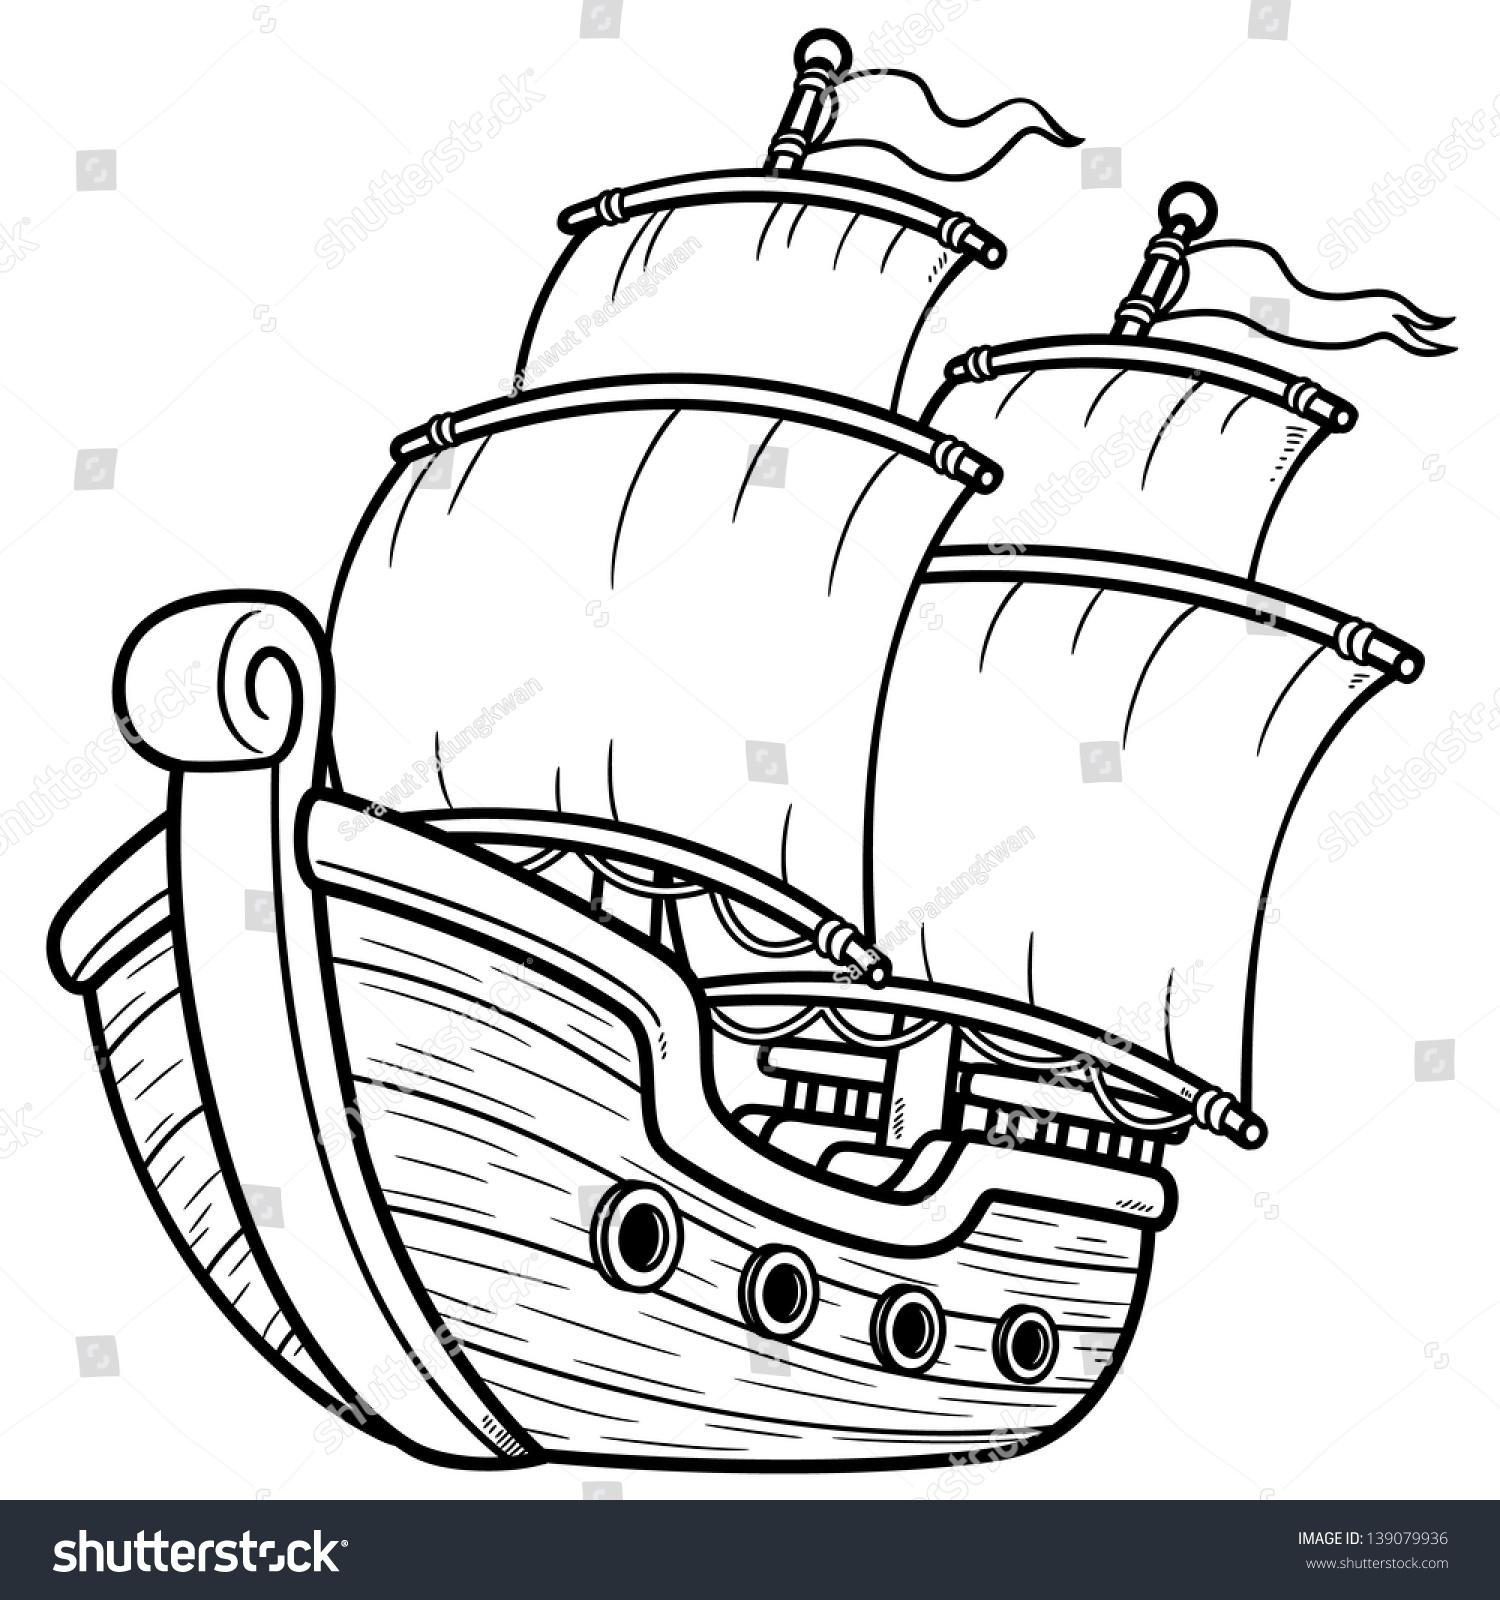 1500x1600 16 Images Of Coin Pirate Ship Drawing Template